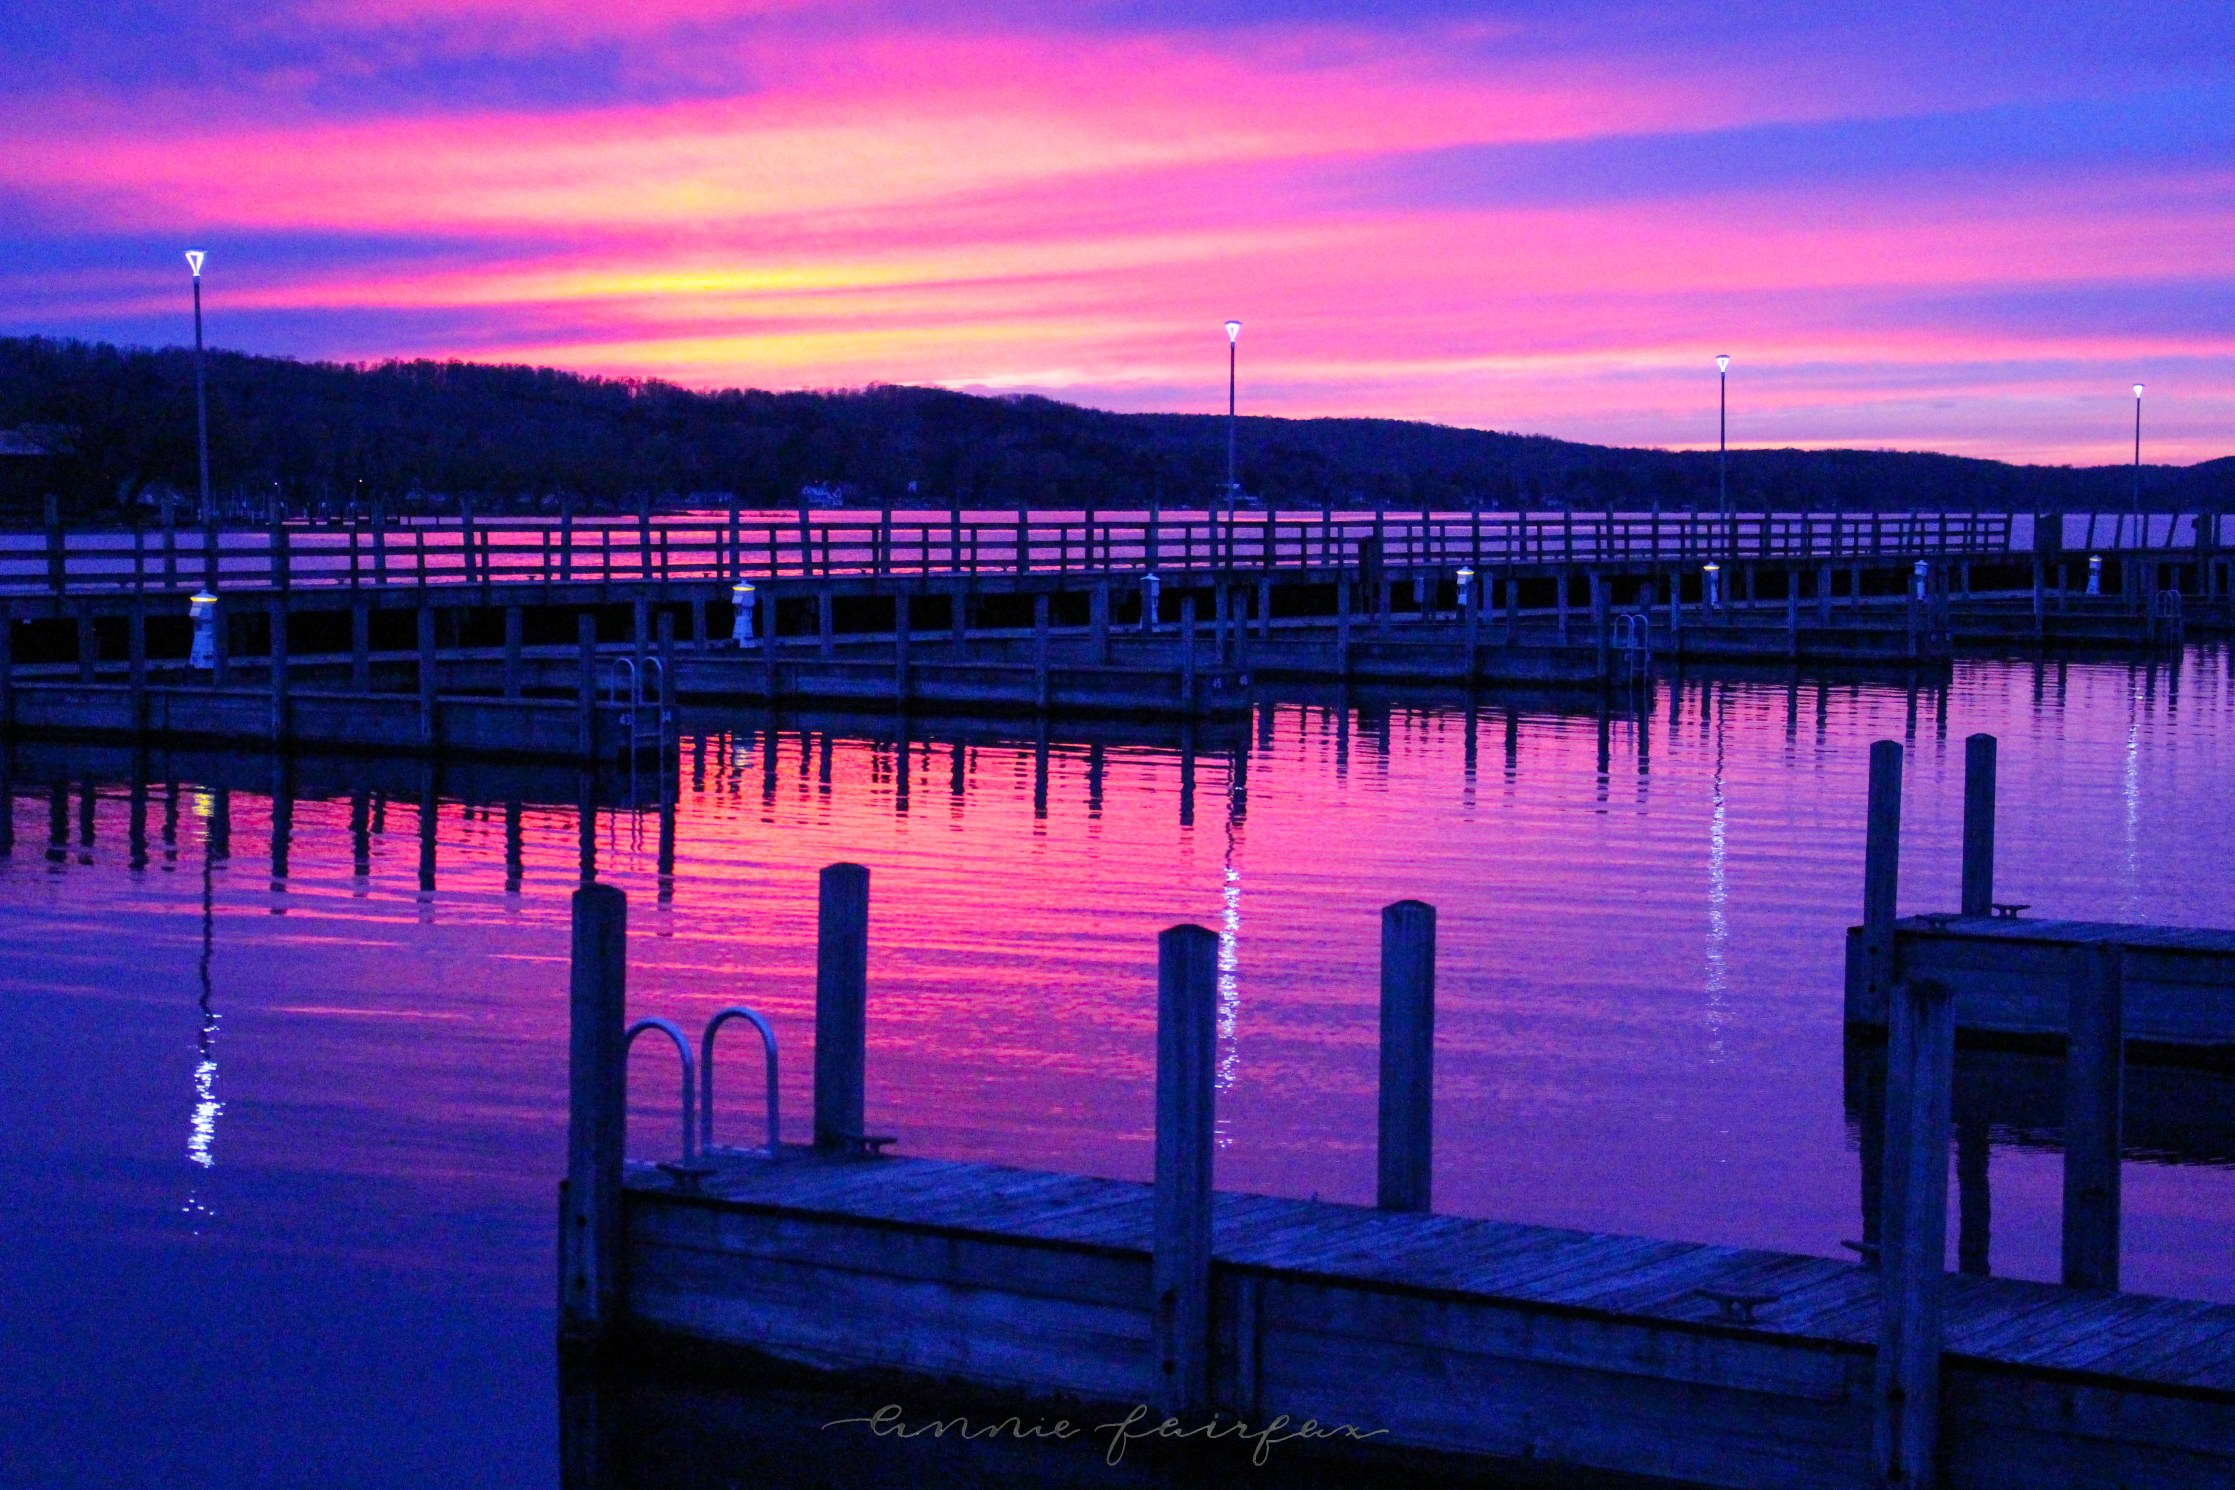 Sunset on the East Jordan, MI Marina by Annie Fairfax